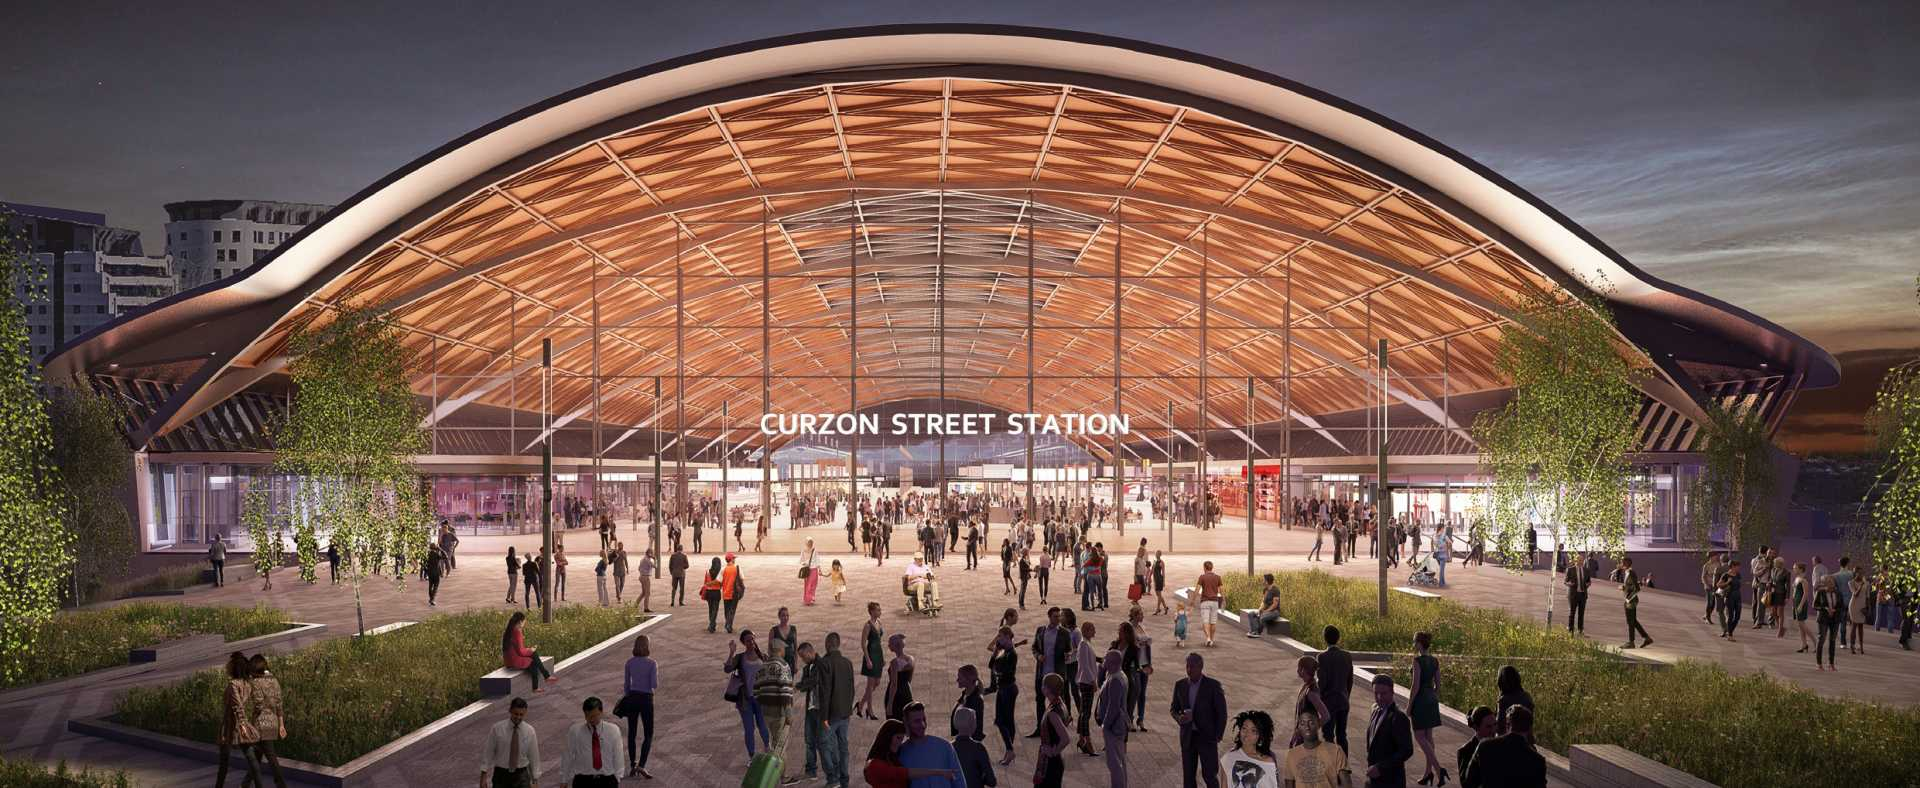 The Curzon Street Masterplan covers the area that will house the HS2 Curzon Street station in Birmingham city centre